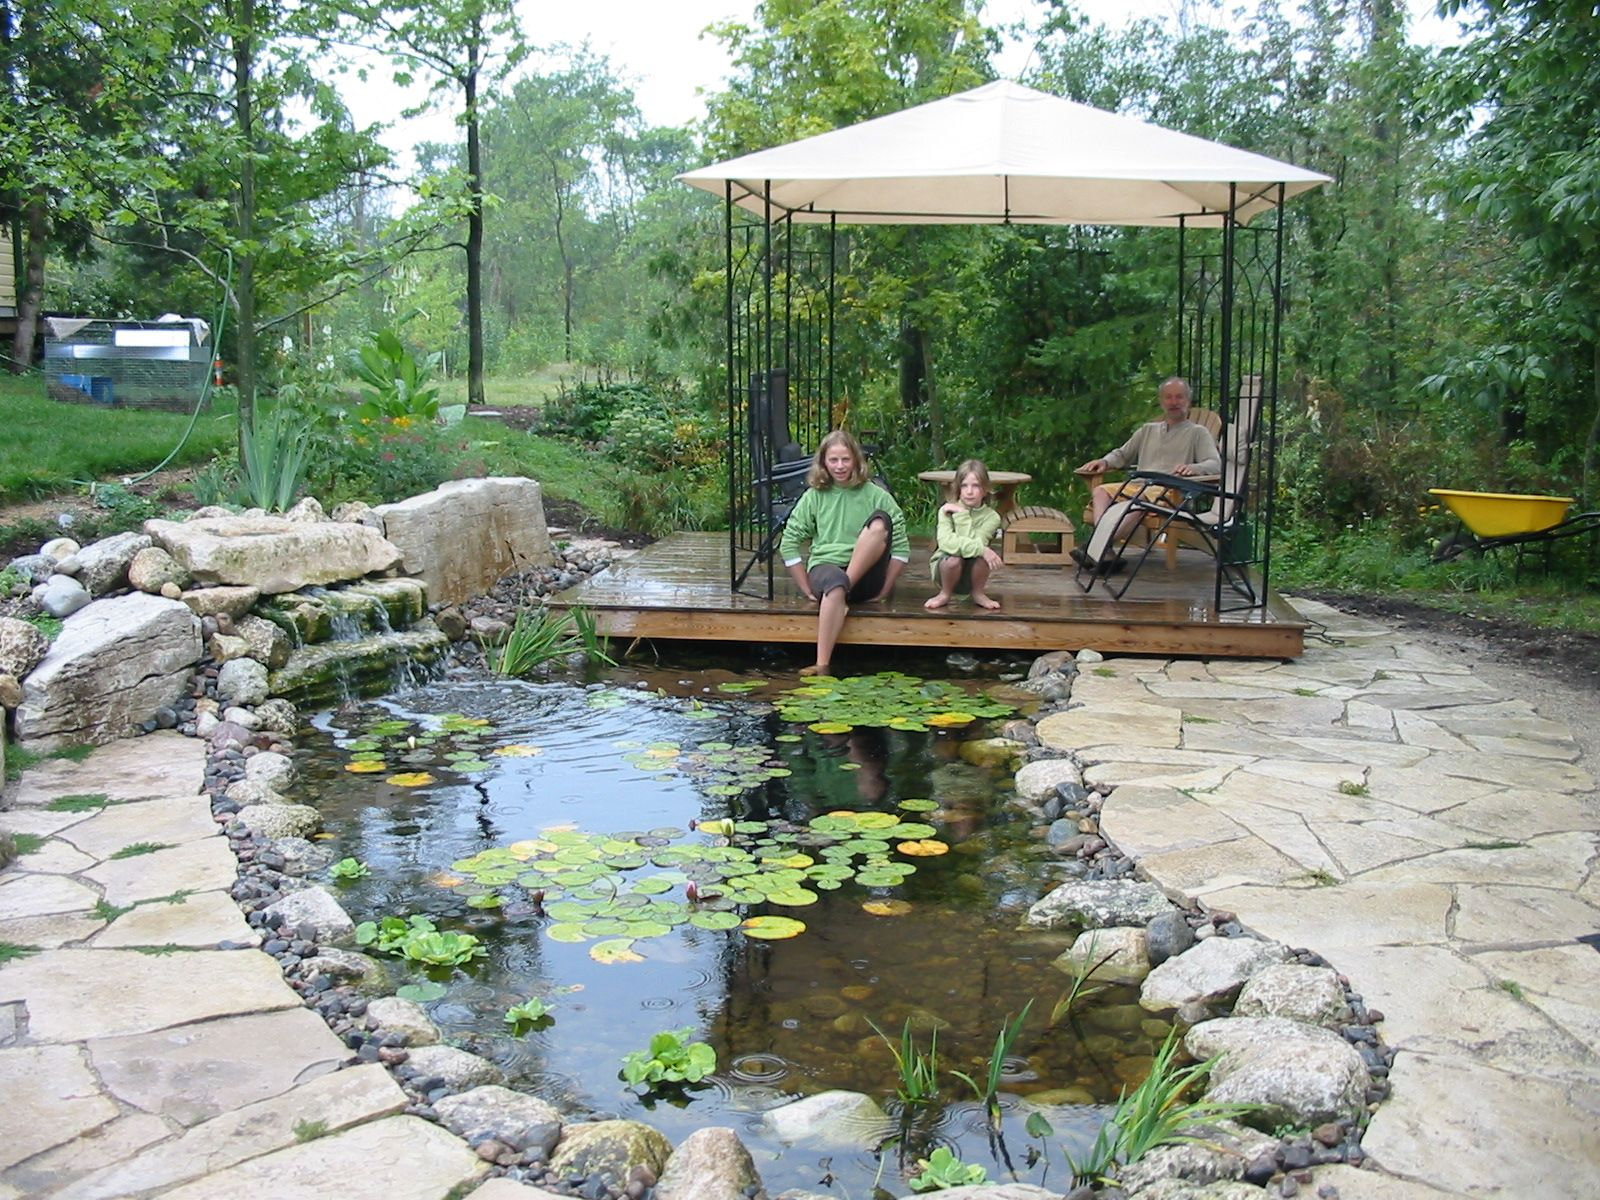 Small Backyard Ponds And Waterfalls | Ponds And Waterfalls ... on Small Backyard Pond With Waterfall id=67451